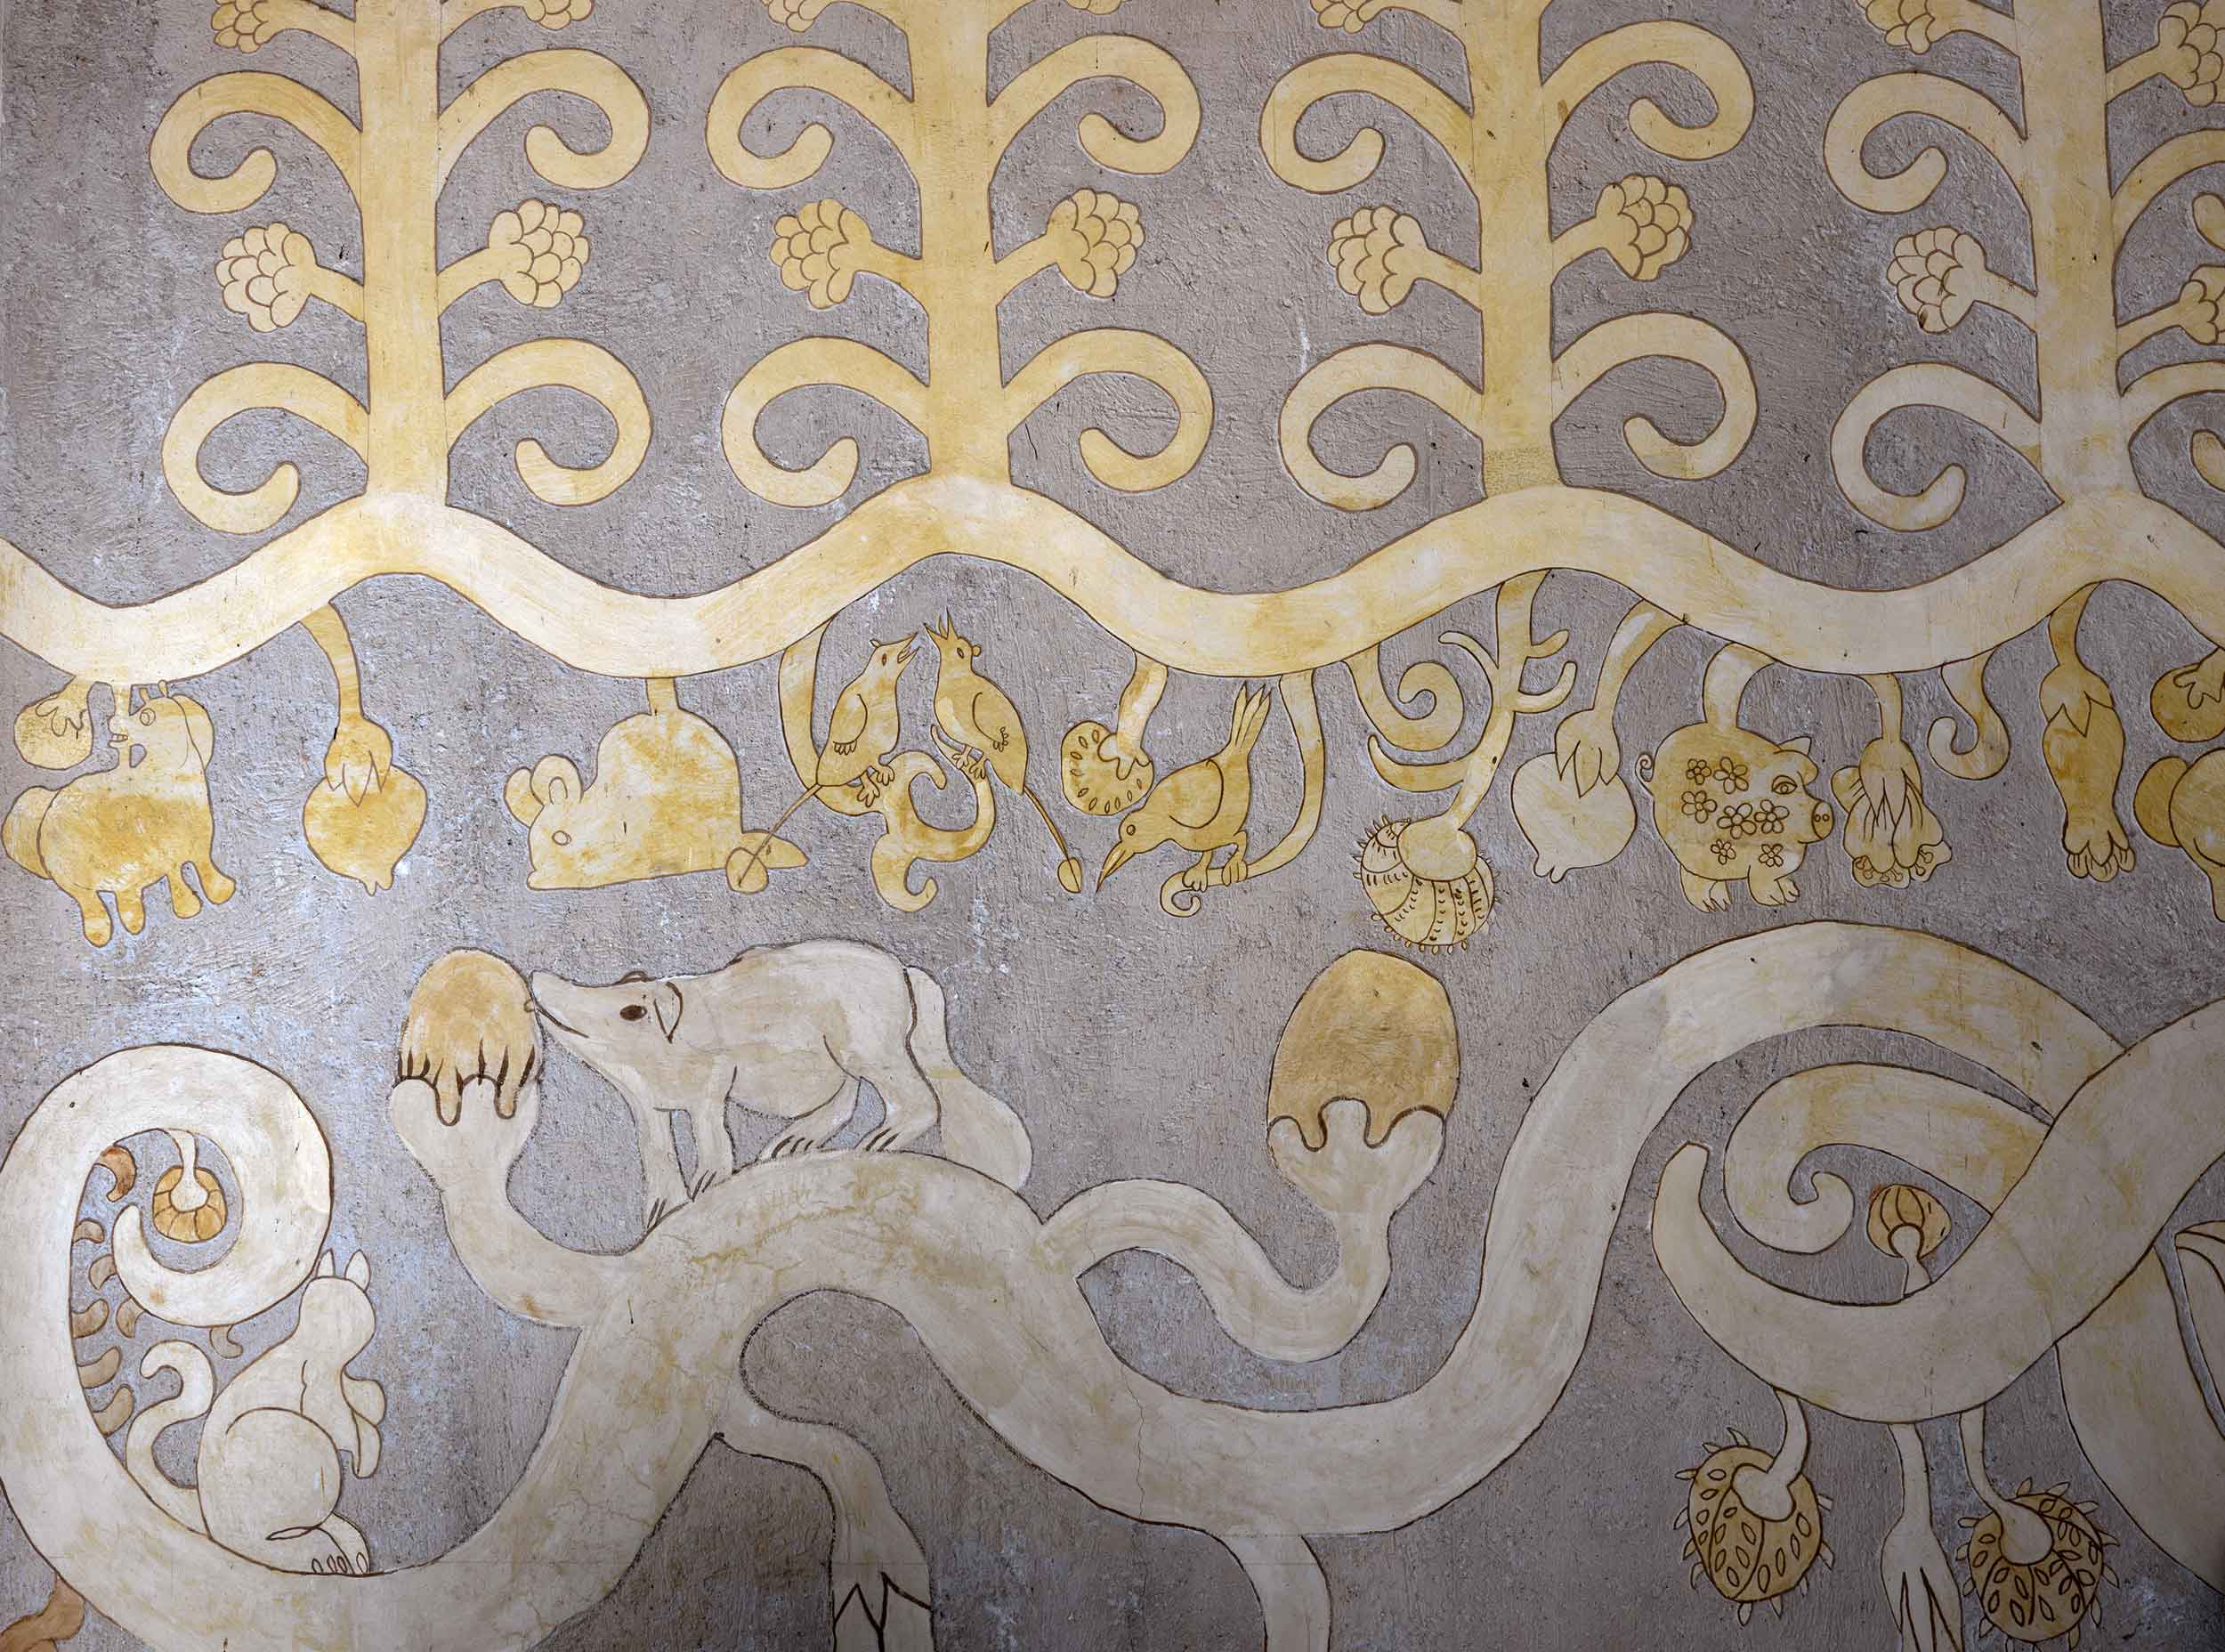 This mural with animal and bird motifs is just one of the estate's many artistic features.